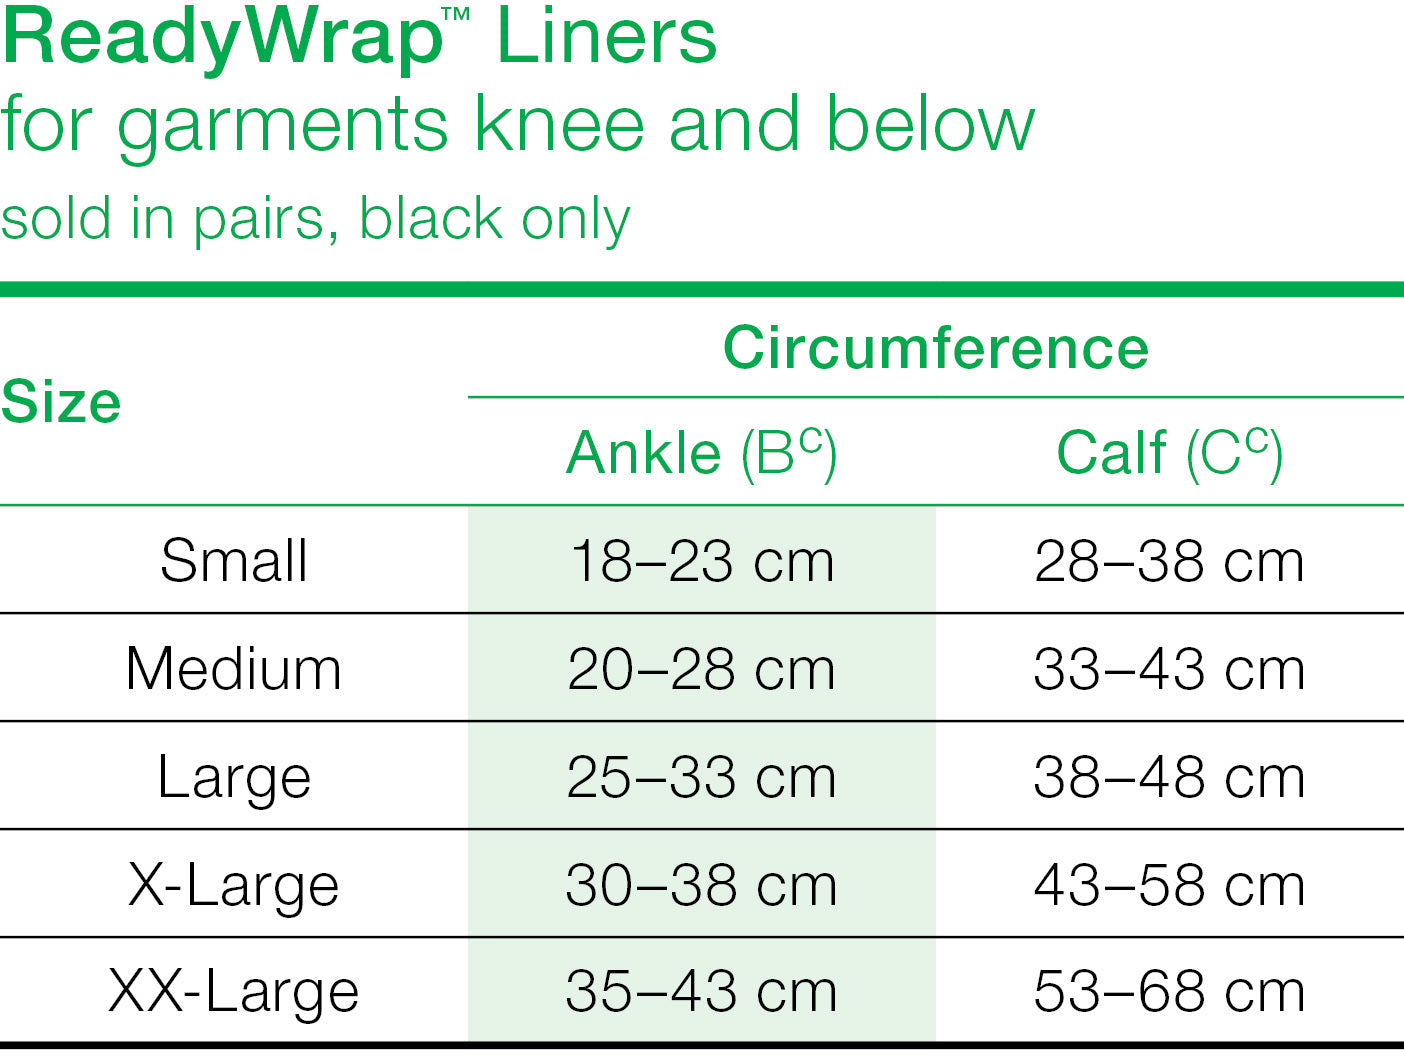 Solaris ReadyWrap Liner Below Knee size chart